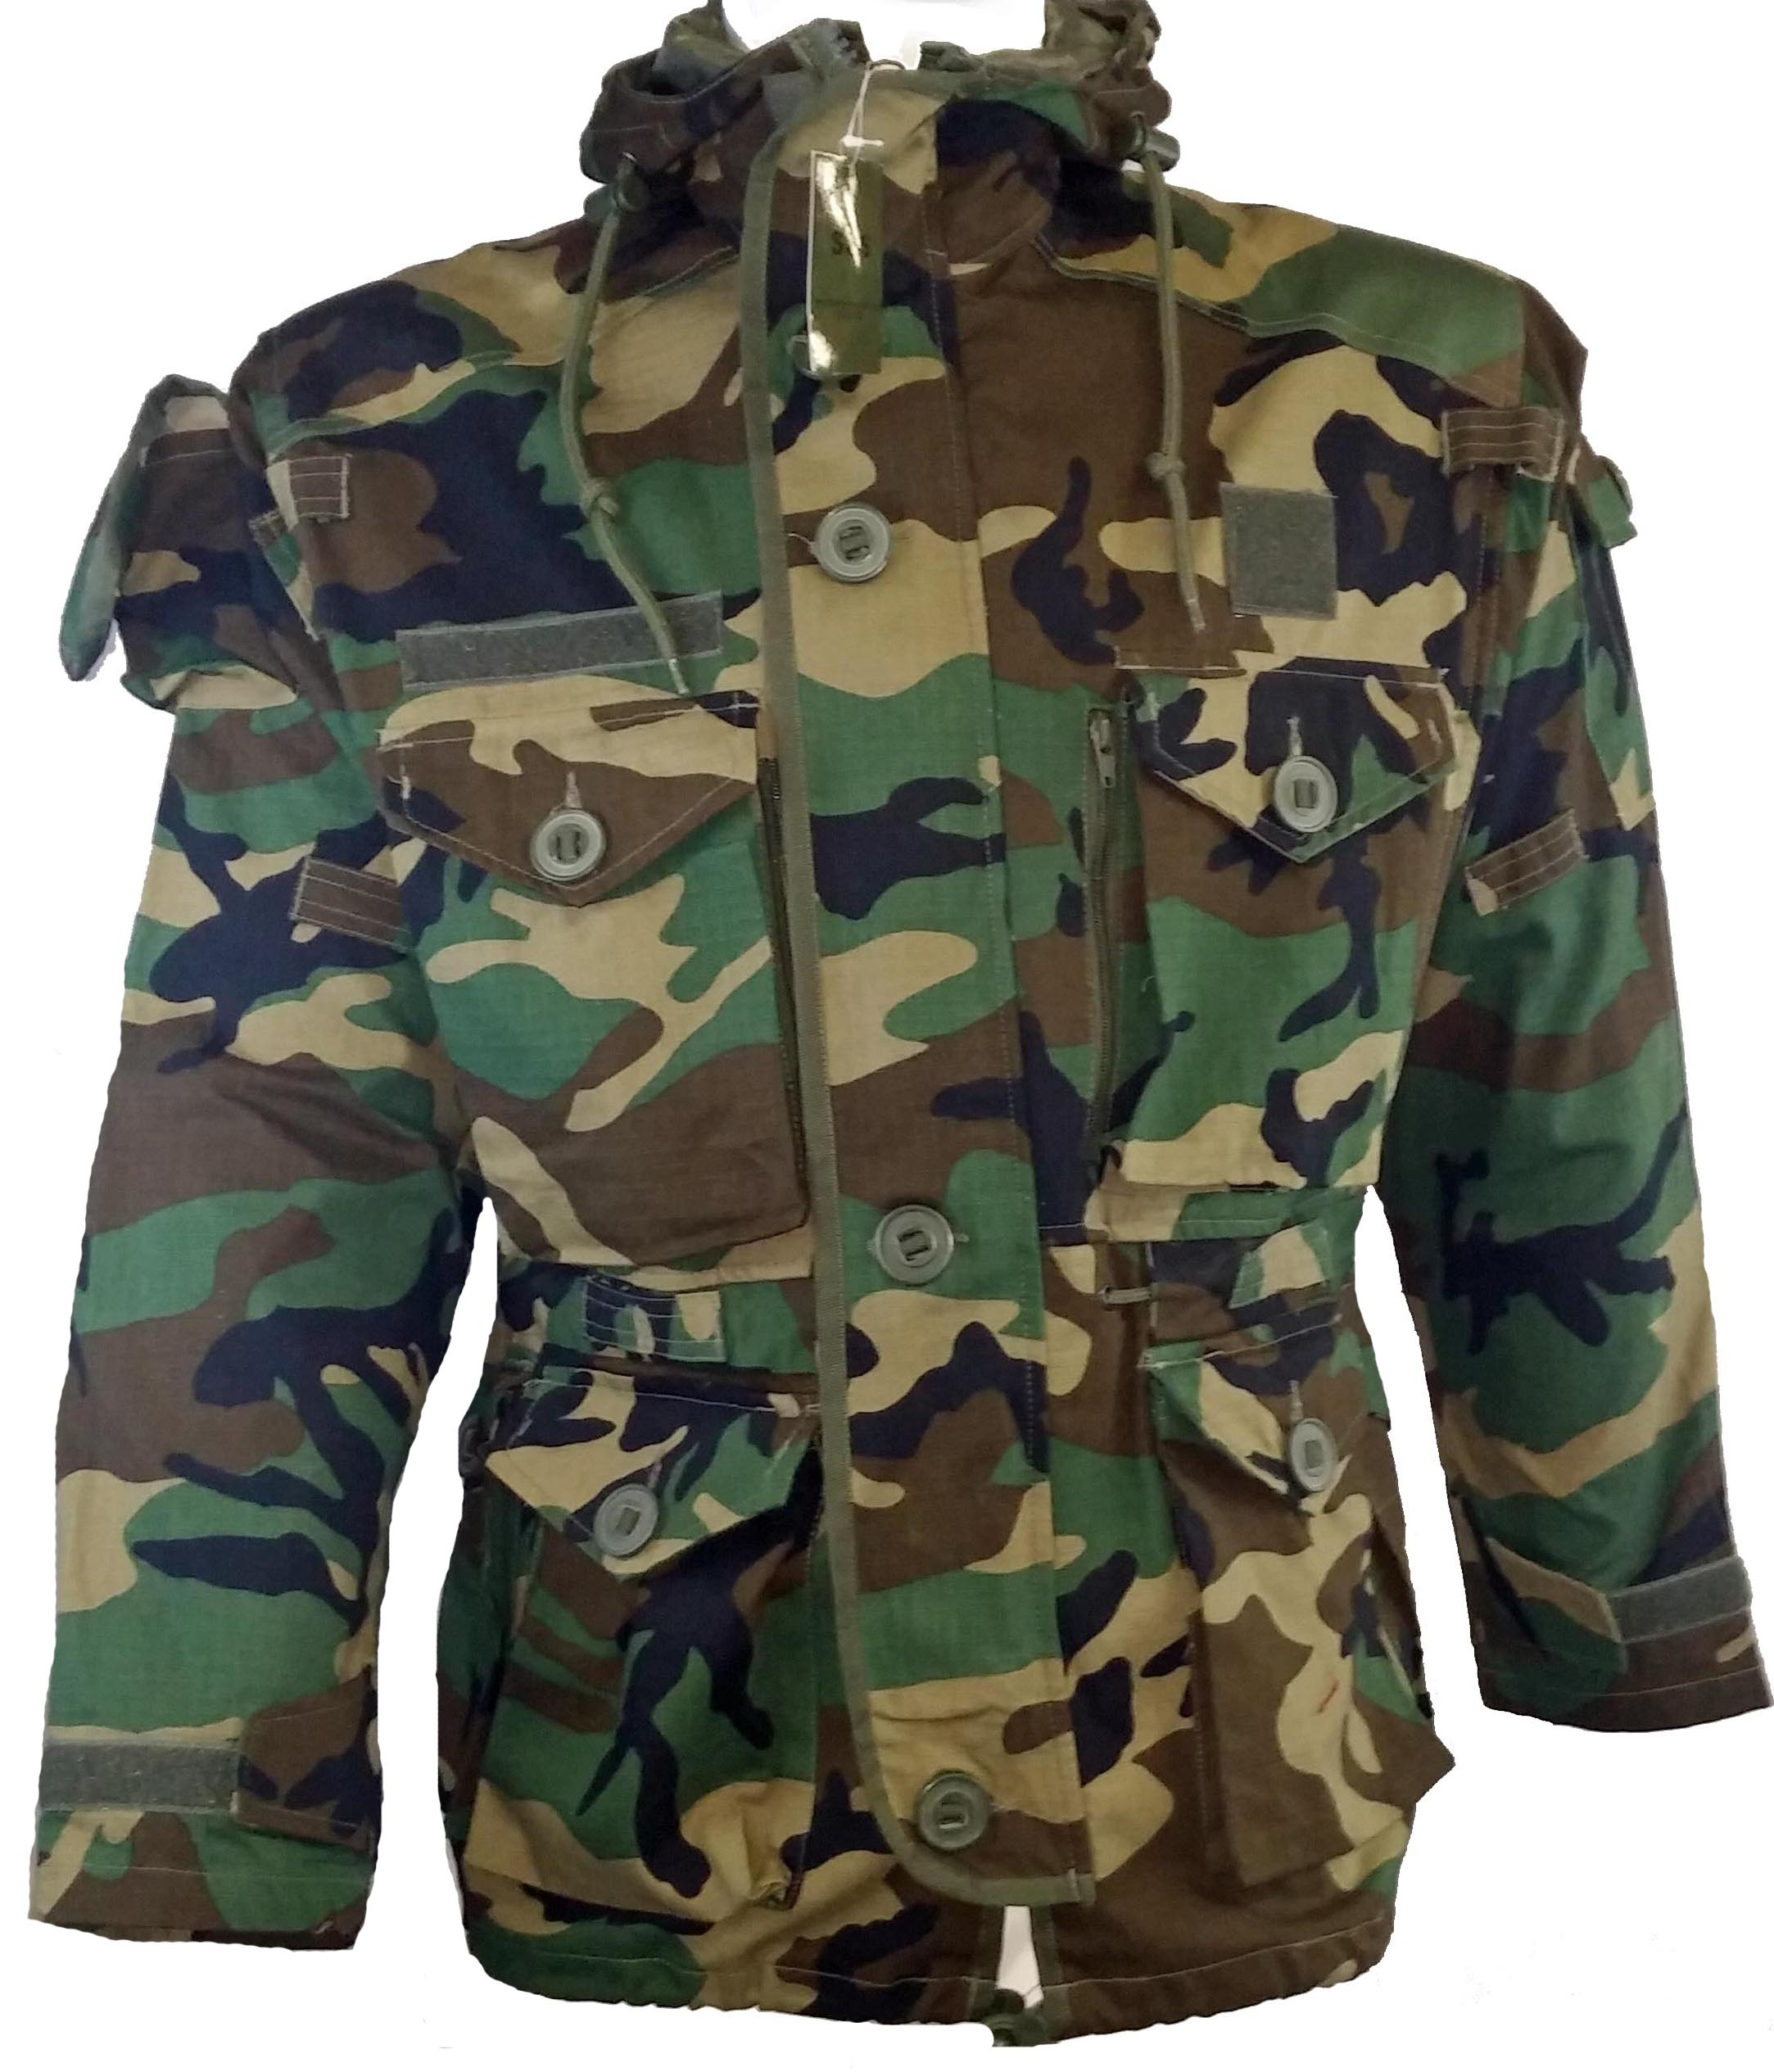 SGS paratroop coat